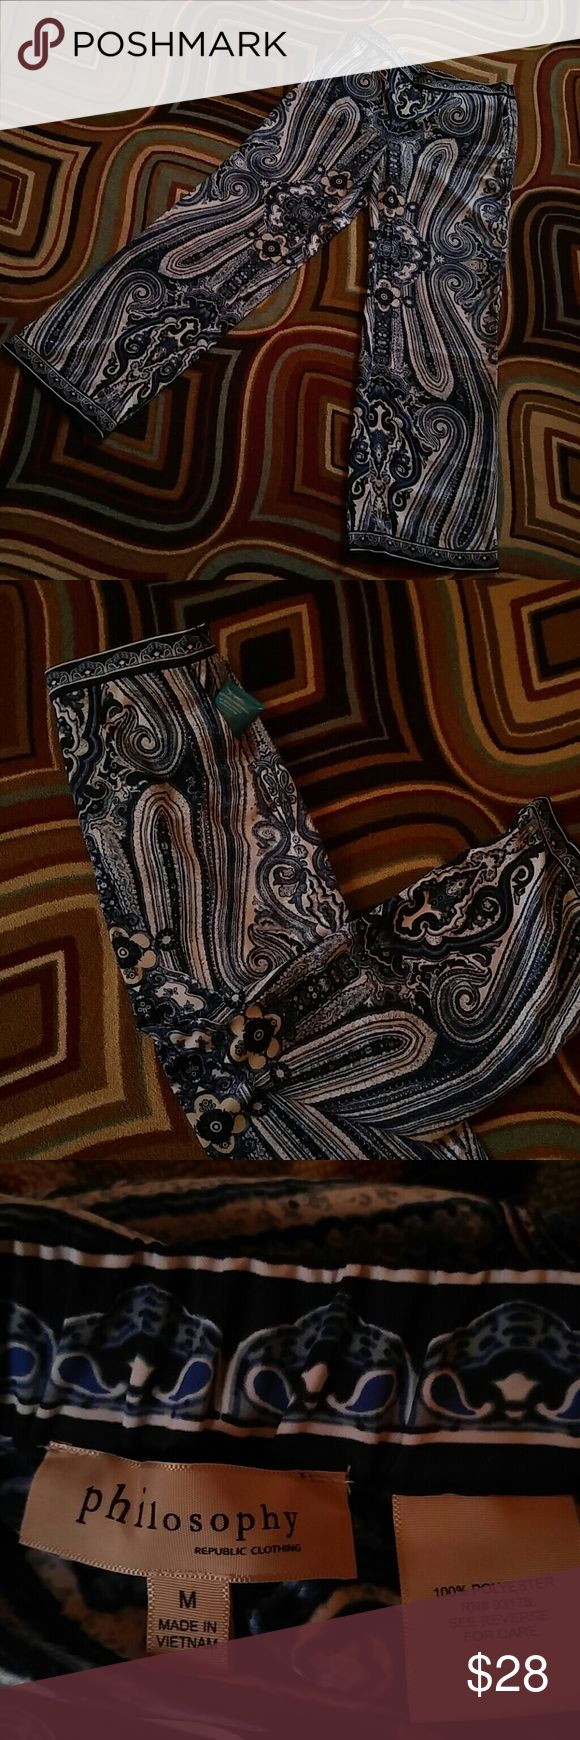 Curtis warnes butterfly chairs michigan artists gallery - Euc Pallazo Pants By Philosophy Gorgeous Blue And White Paisley Pants Side Zip Elastic In